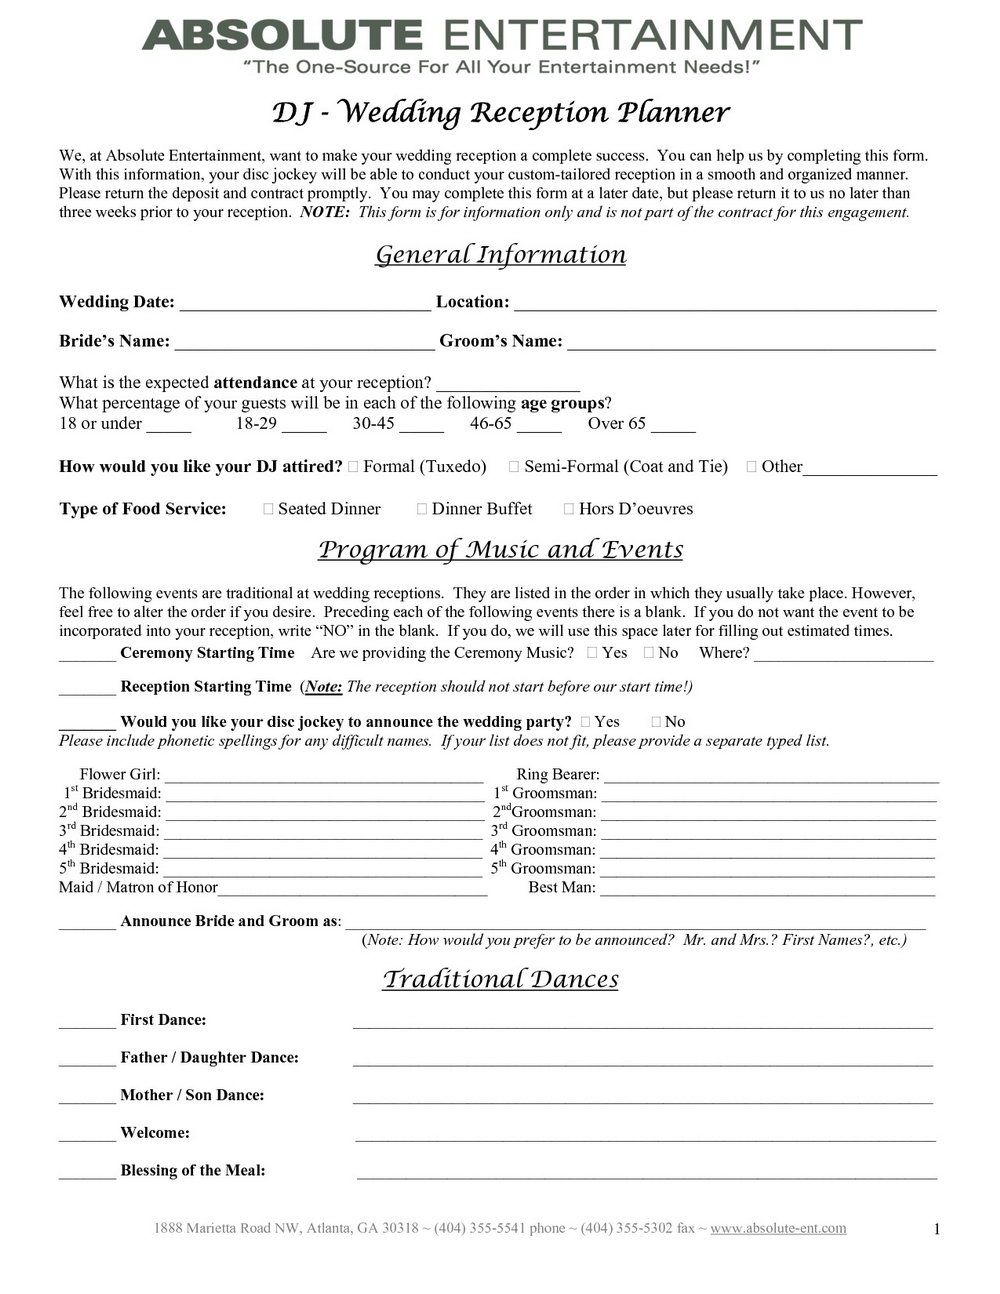 Wedding Planner Contract Template